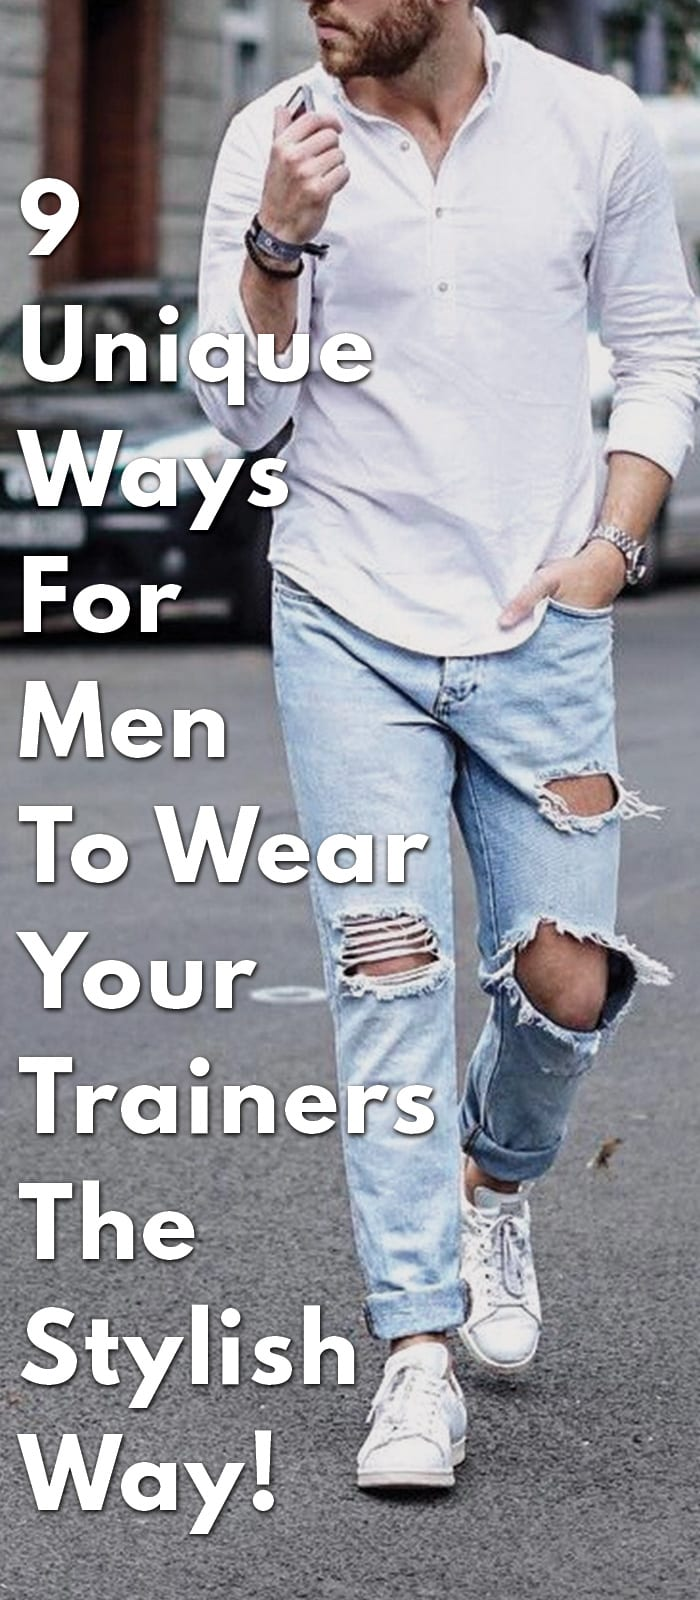 9-Unique-Ways-For-Men-To-Wear-Your-Trainers-The-Stylish-Way!